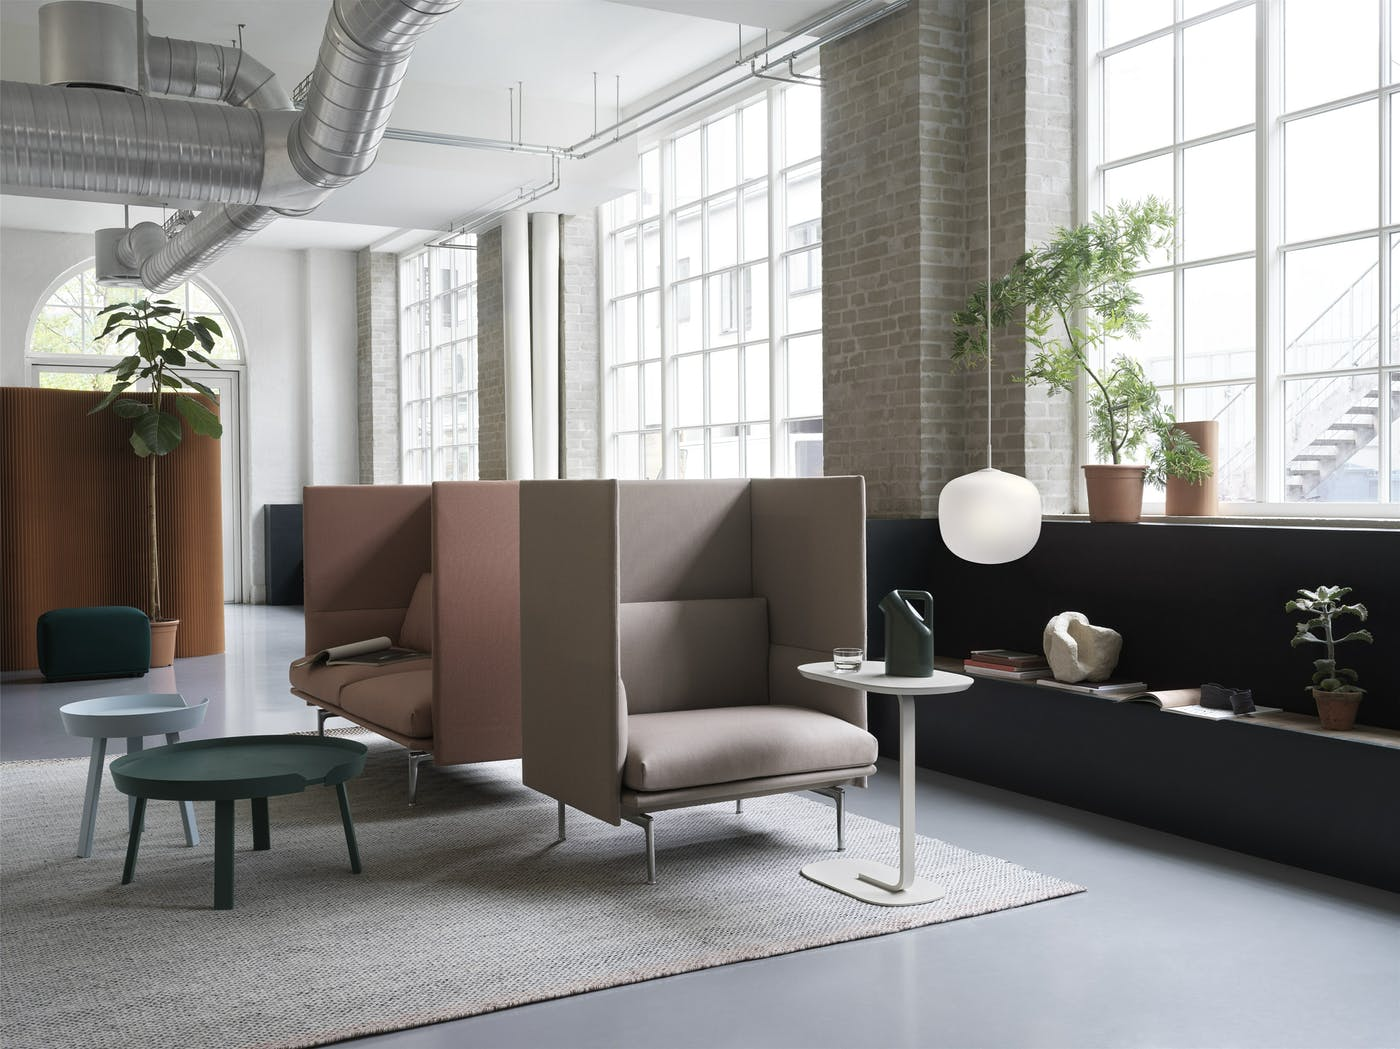 Outline highback 1 seater twill weave 230 2 seater twill weave 530 around relate rime pendant V2 muuto org 150